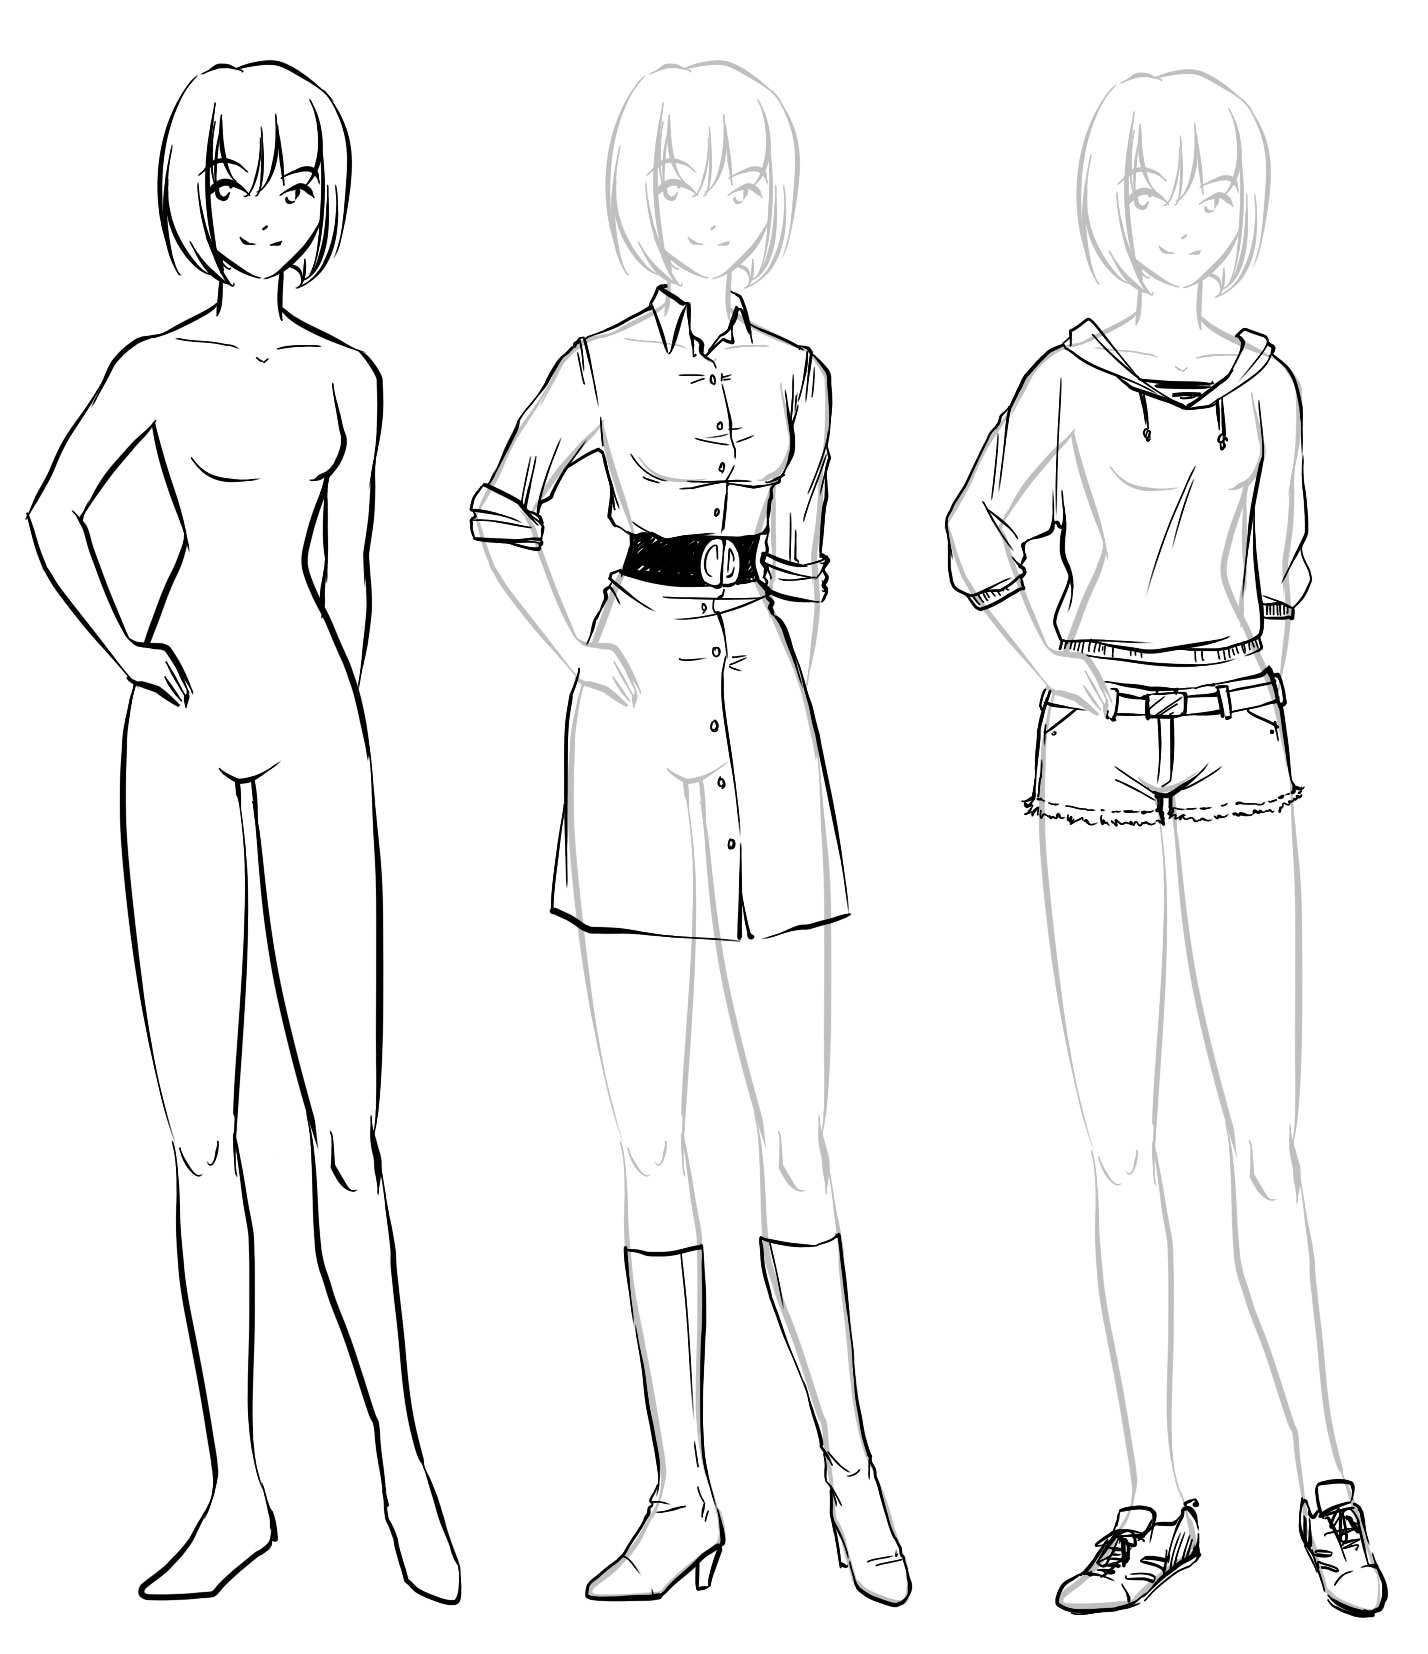 1428x1654 Pictures Of Full Girls To Draw Anime Girl Full Body Drawing